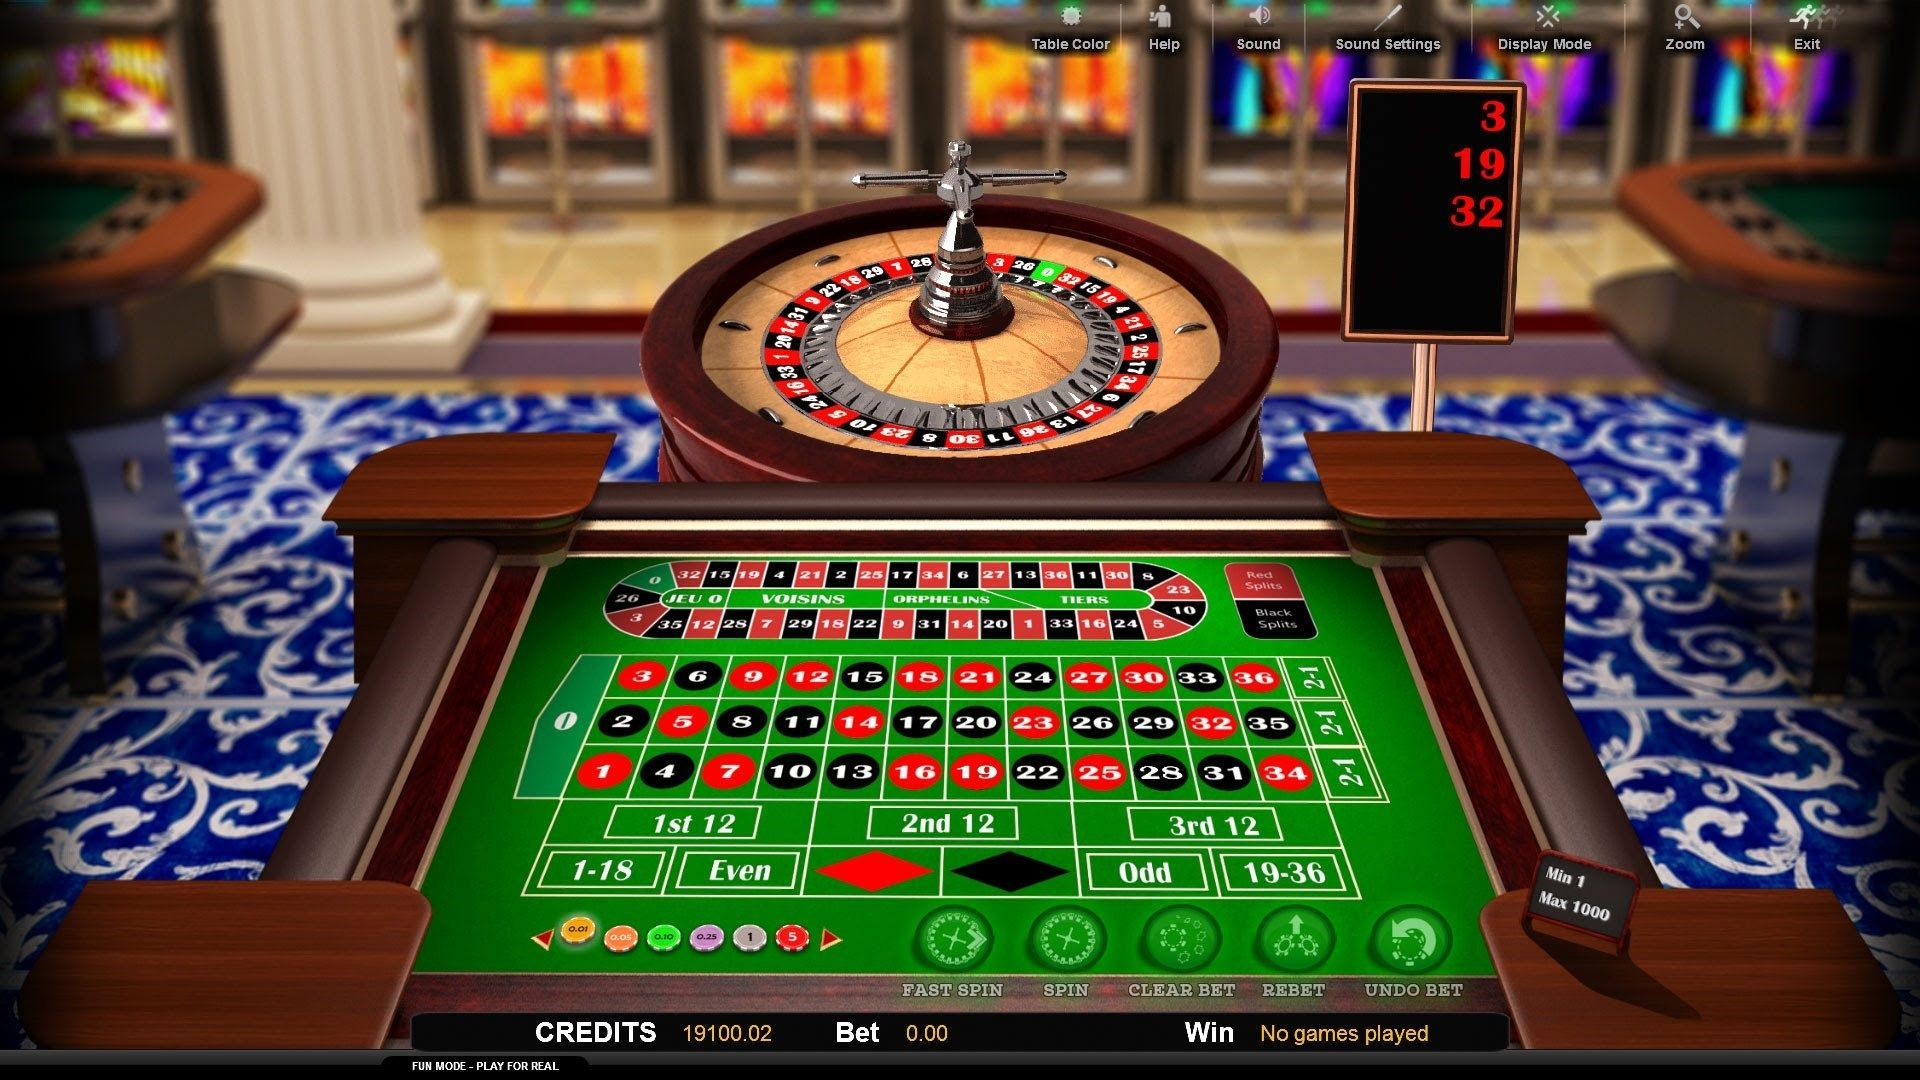 Get Rich Quick with the Online Casino